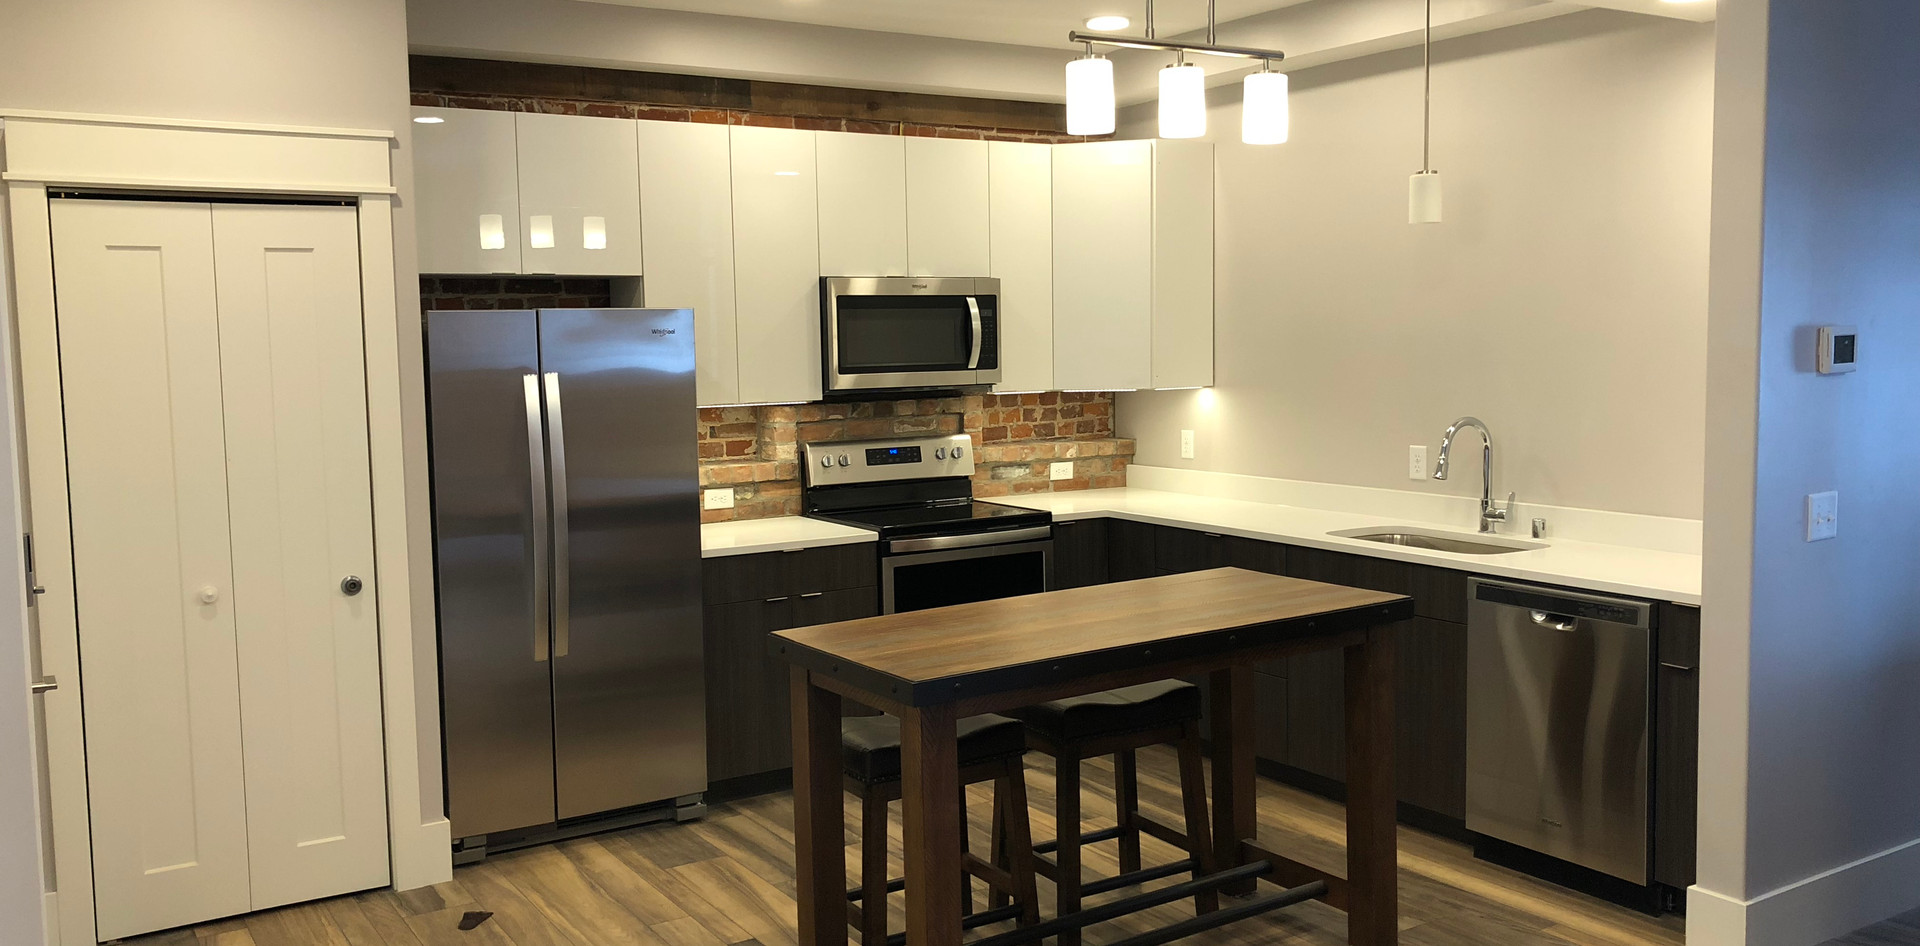 Redstone Lofts 302 Kitchen.JPG